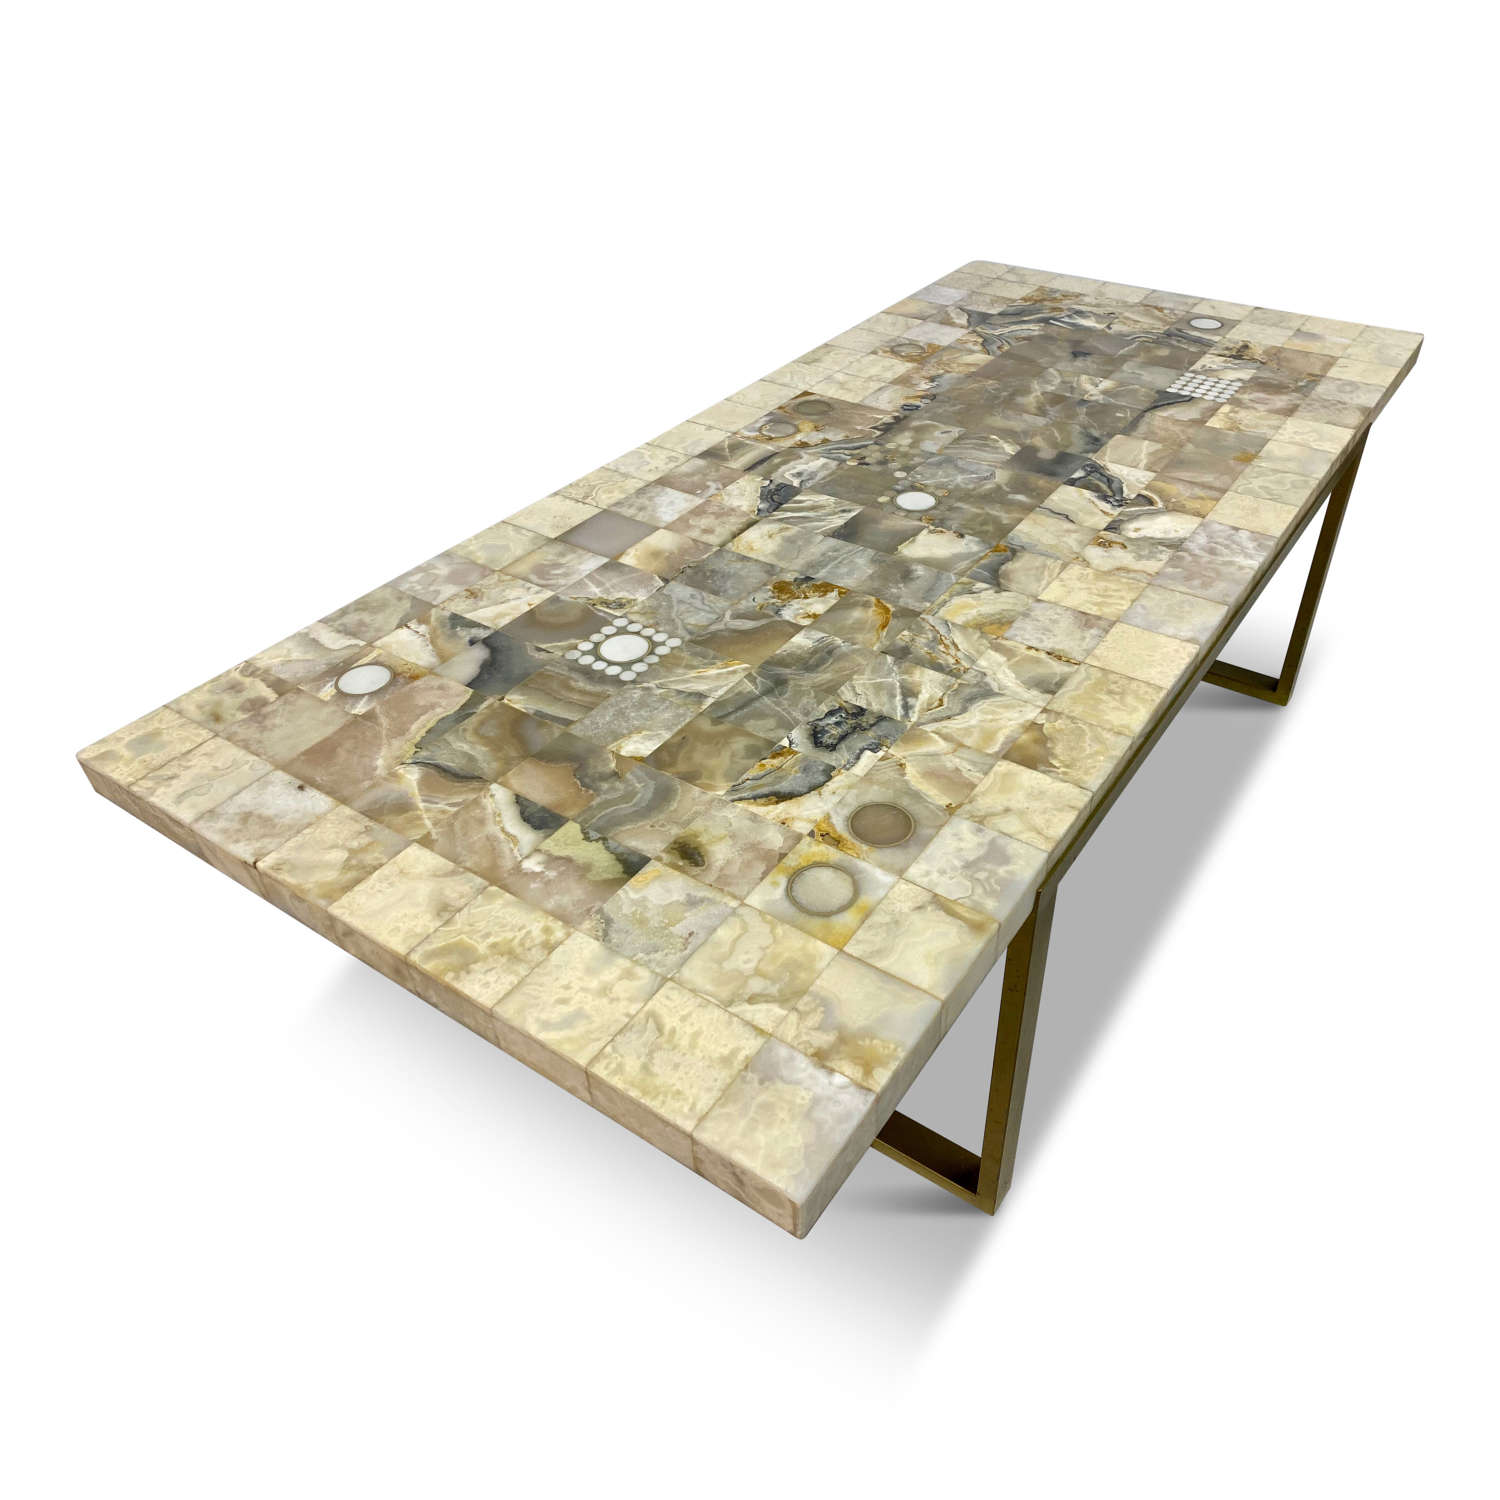 1970s French Mosaic Marble and Onyx Coffee Table